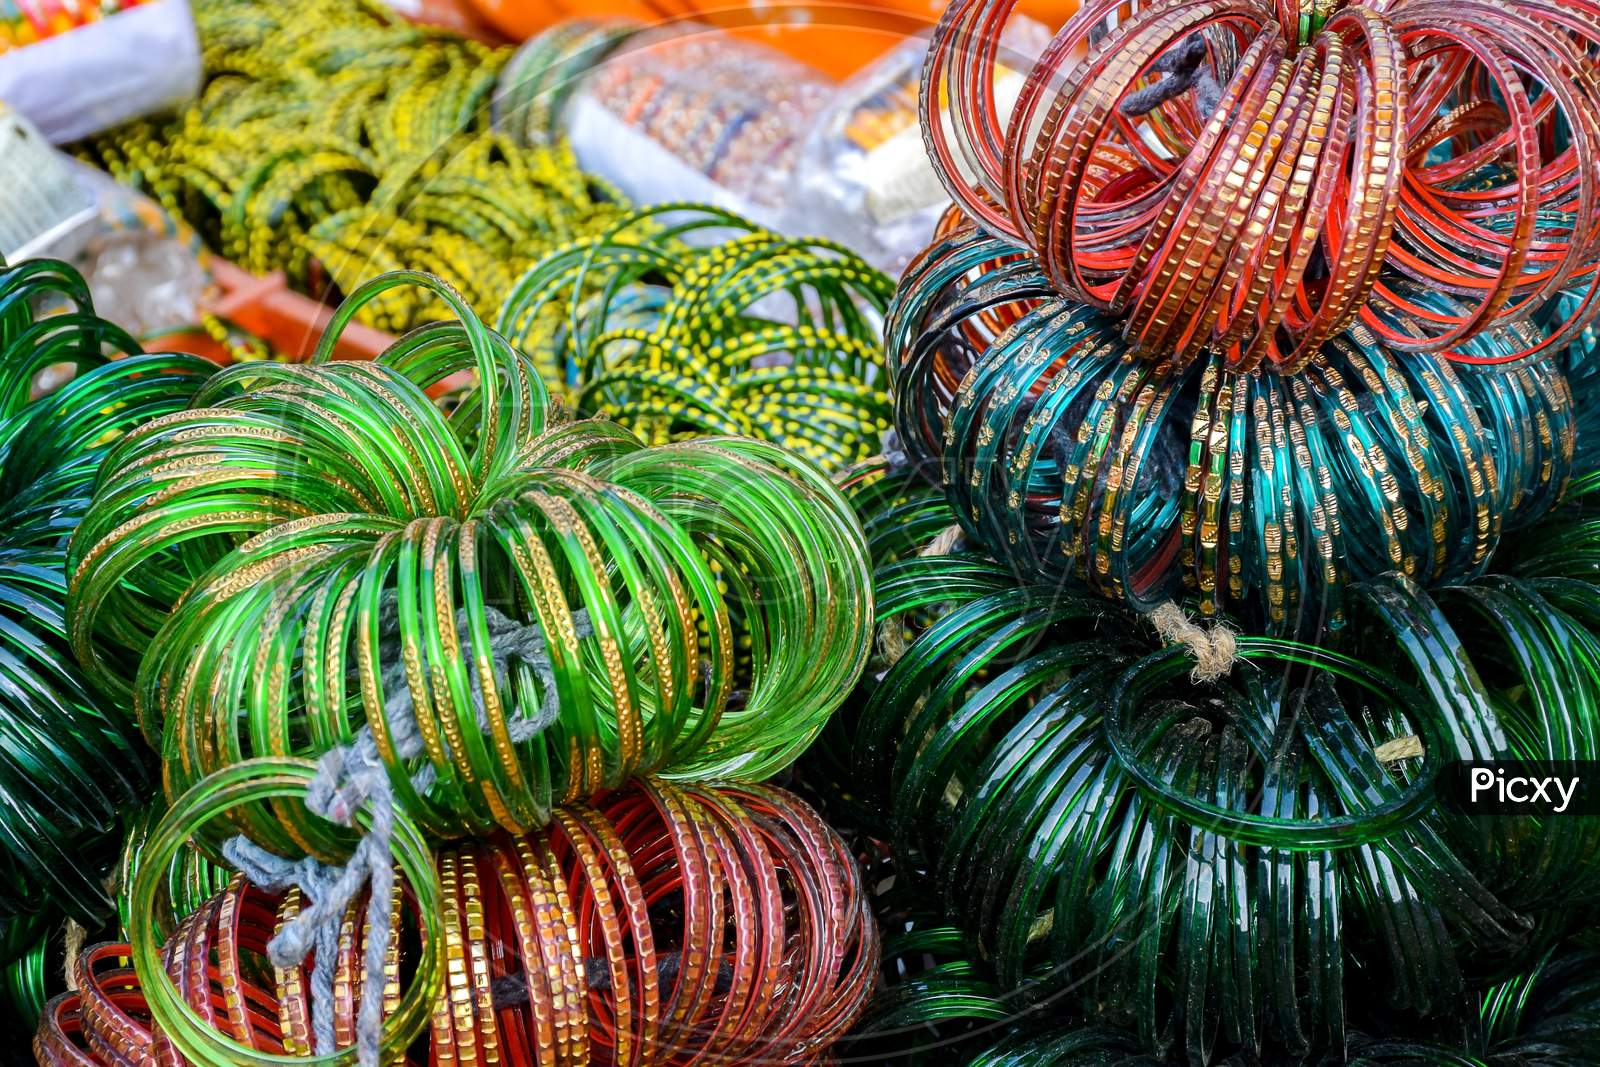 Stock Photo Of Bunch Of Colorful Bangles Made Of Glass Kept On Roadside For Sale In Sunny Afternoon At Indian Market ,Focus On Glass Bangles.